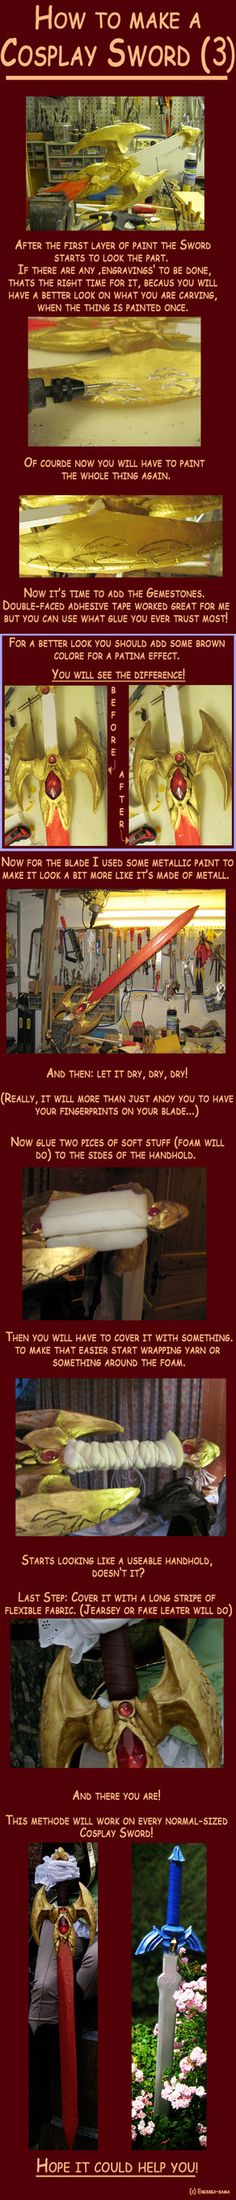 How to make a Cosplay Sword 3 by ~Eressea-sama on deviantART